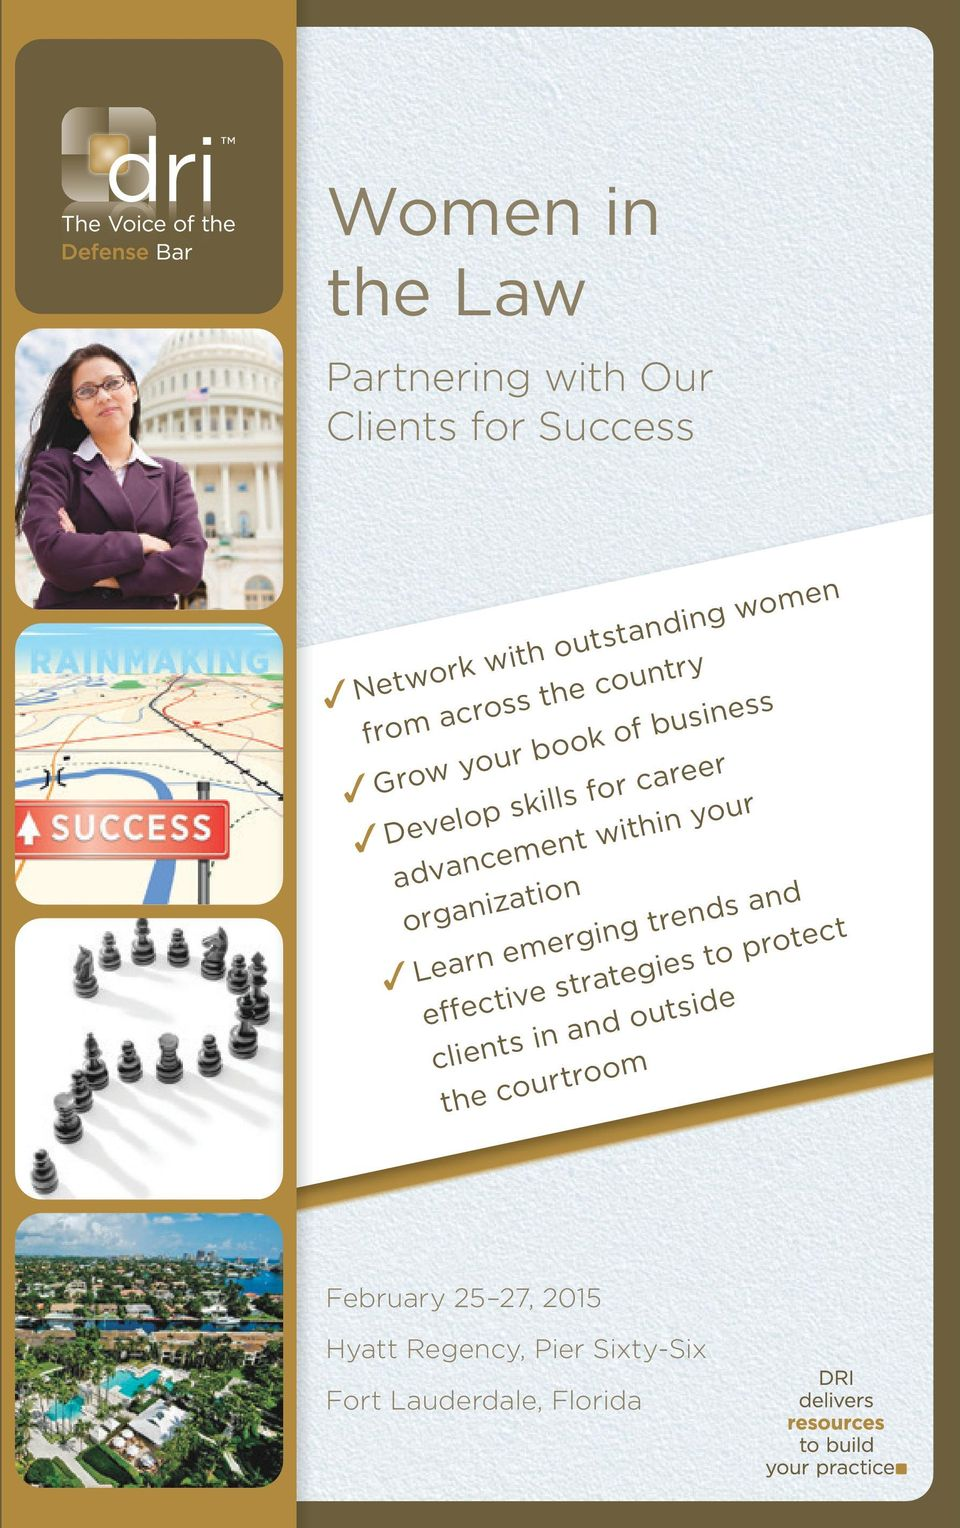 your organization Learn emerging trends and effective strategies to protect clients in and